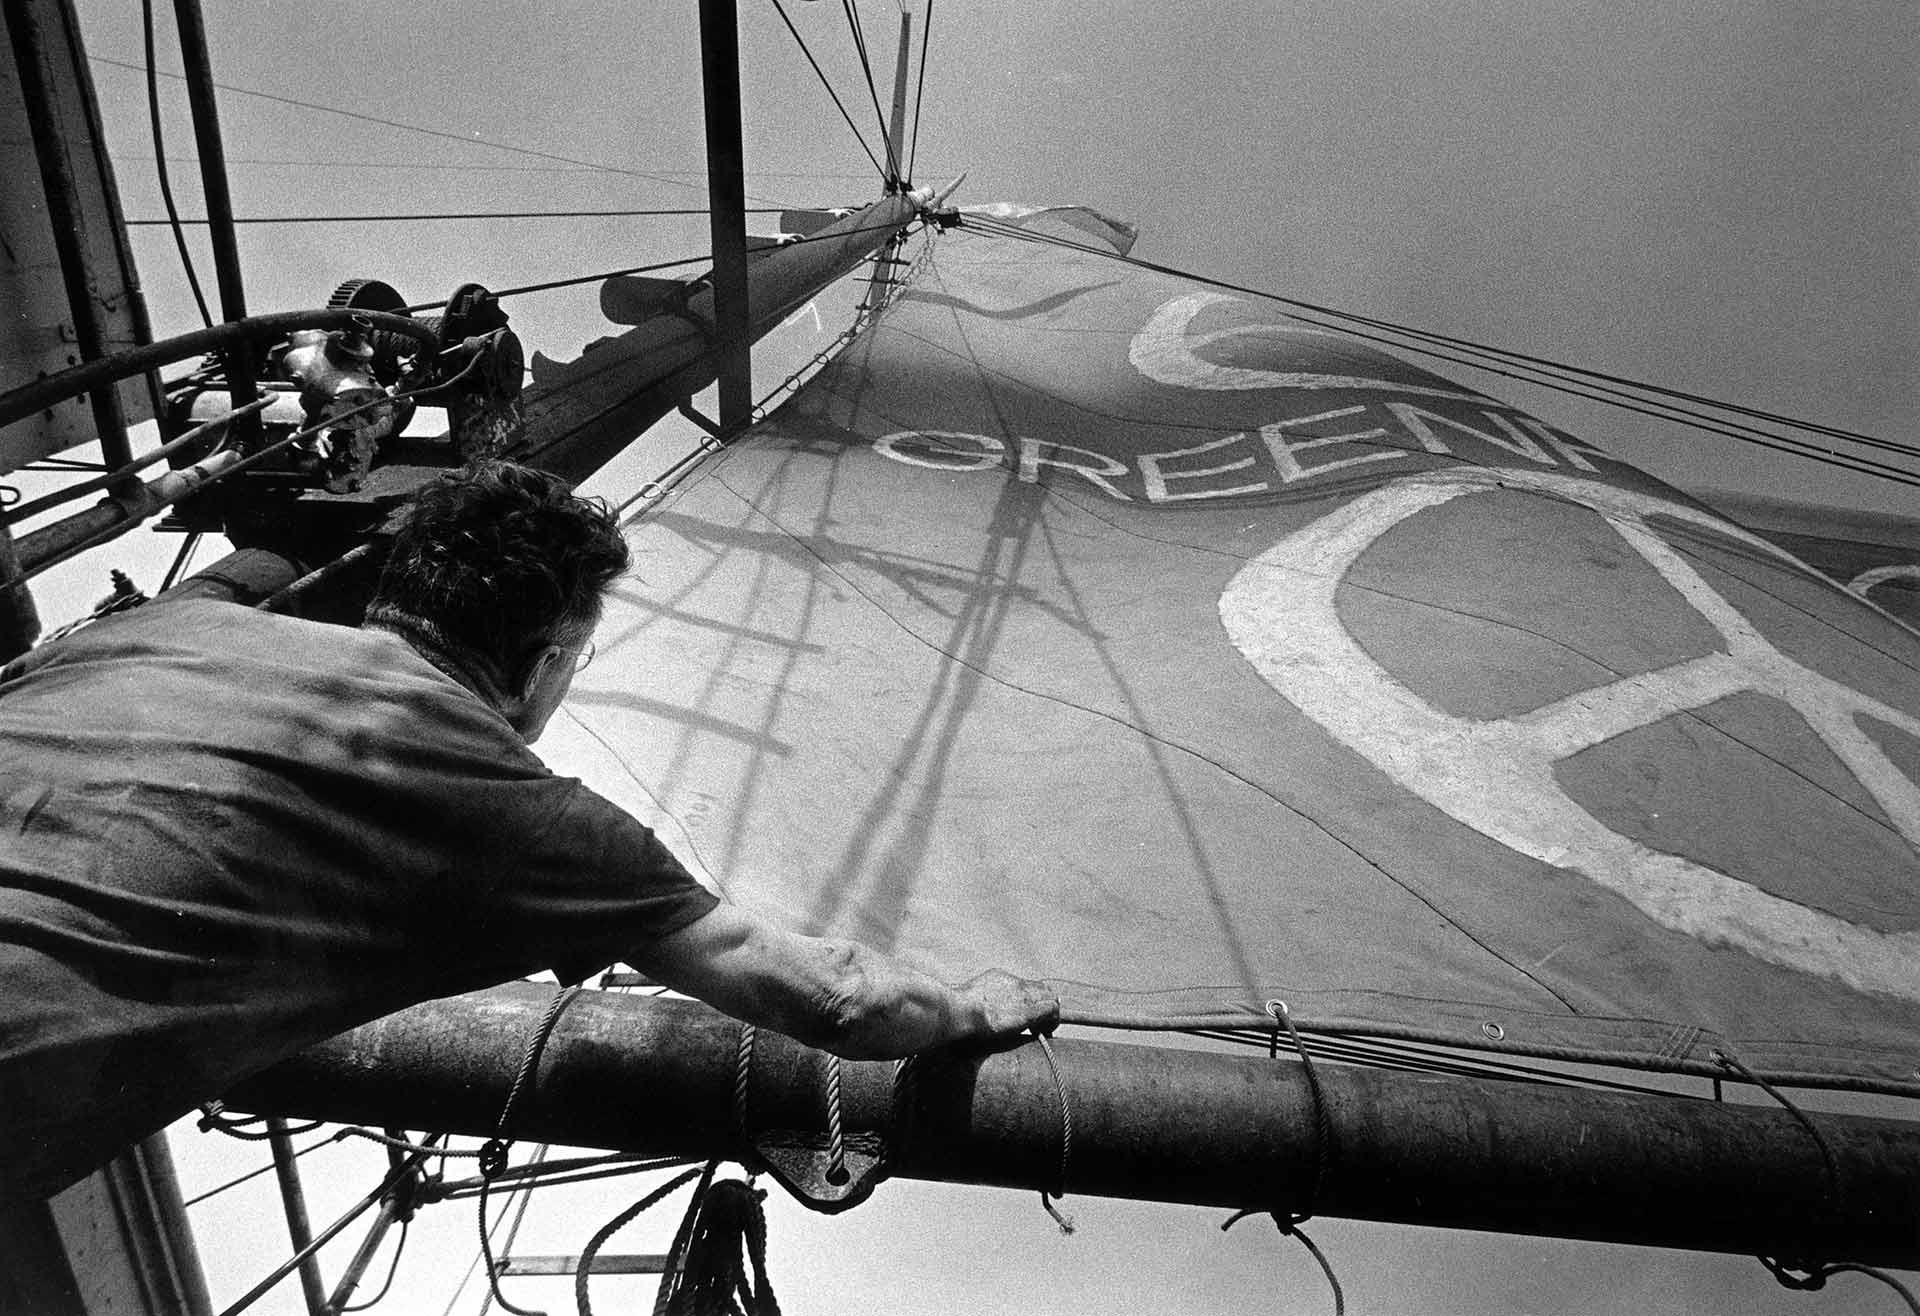 Our history - Greenpeace New Zealand